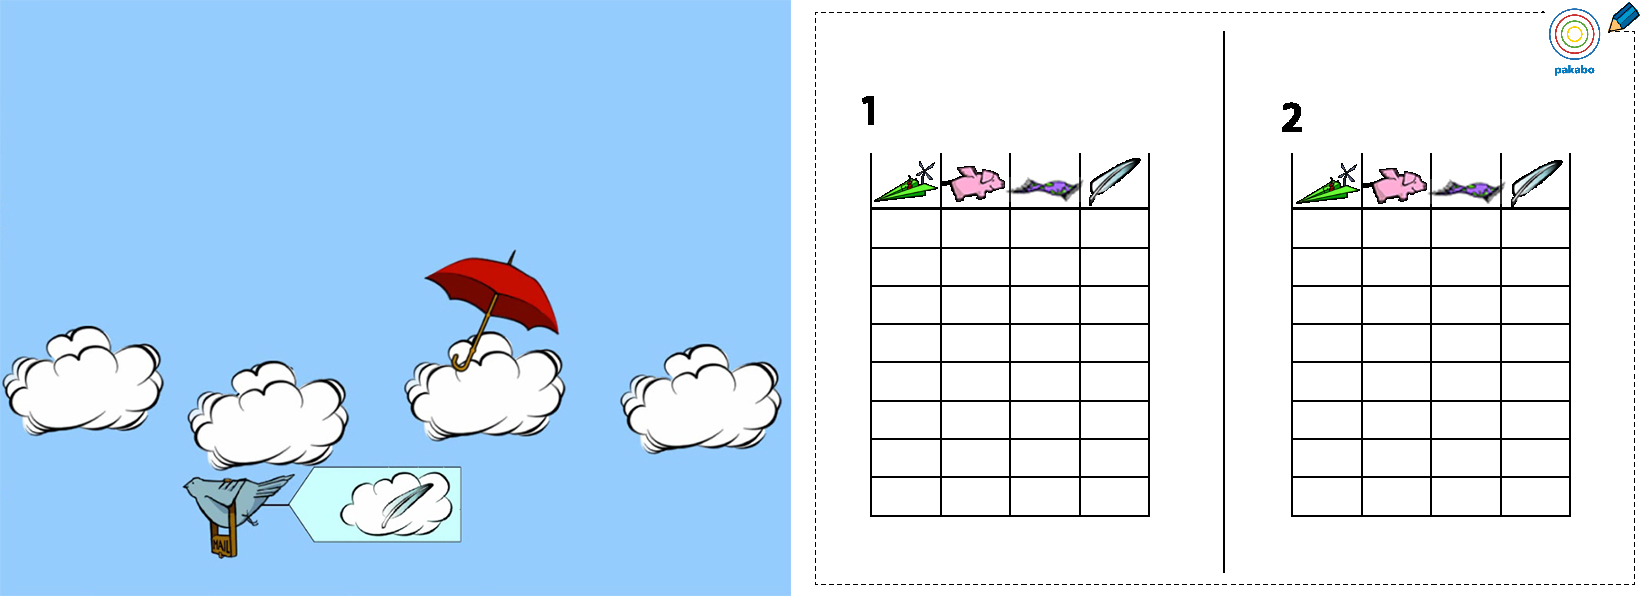 For memory game a sheet with all 4 objects were created.